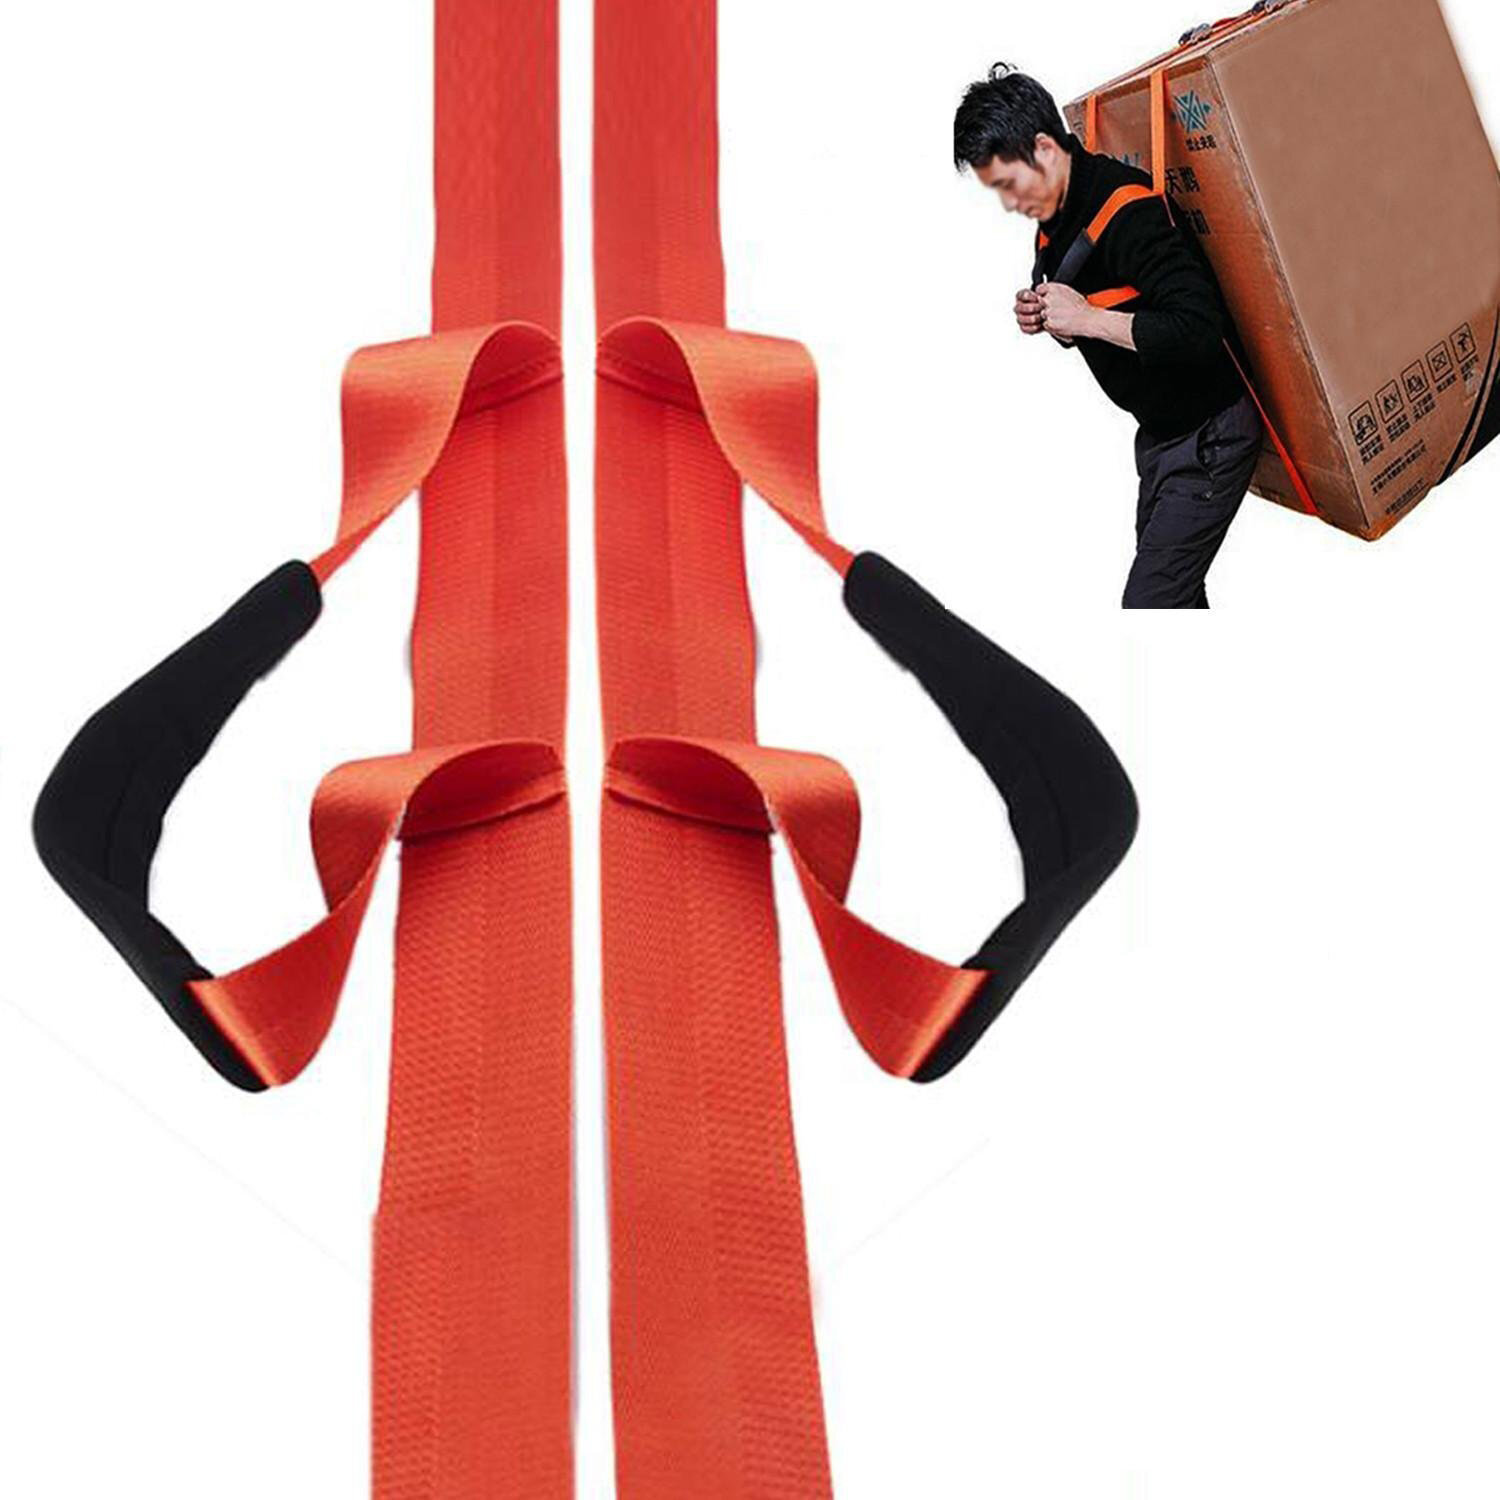 1 Person Furniture Lifting Moving Straps Carrying Belts Ergonomic